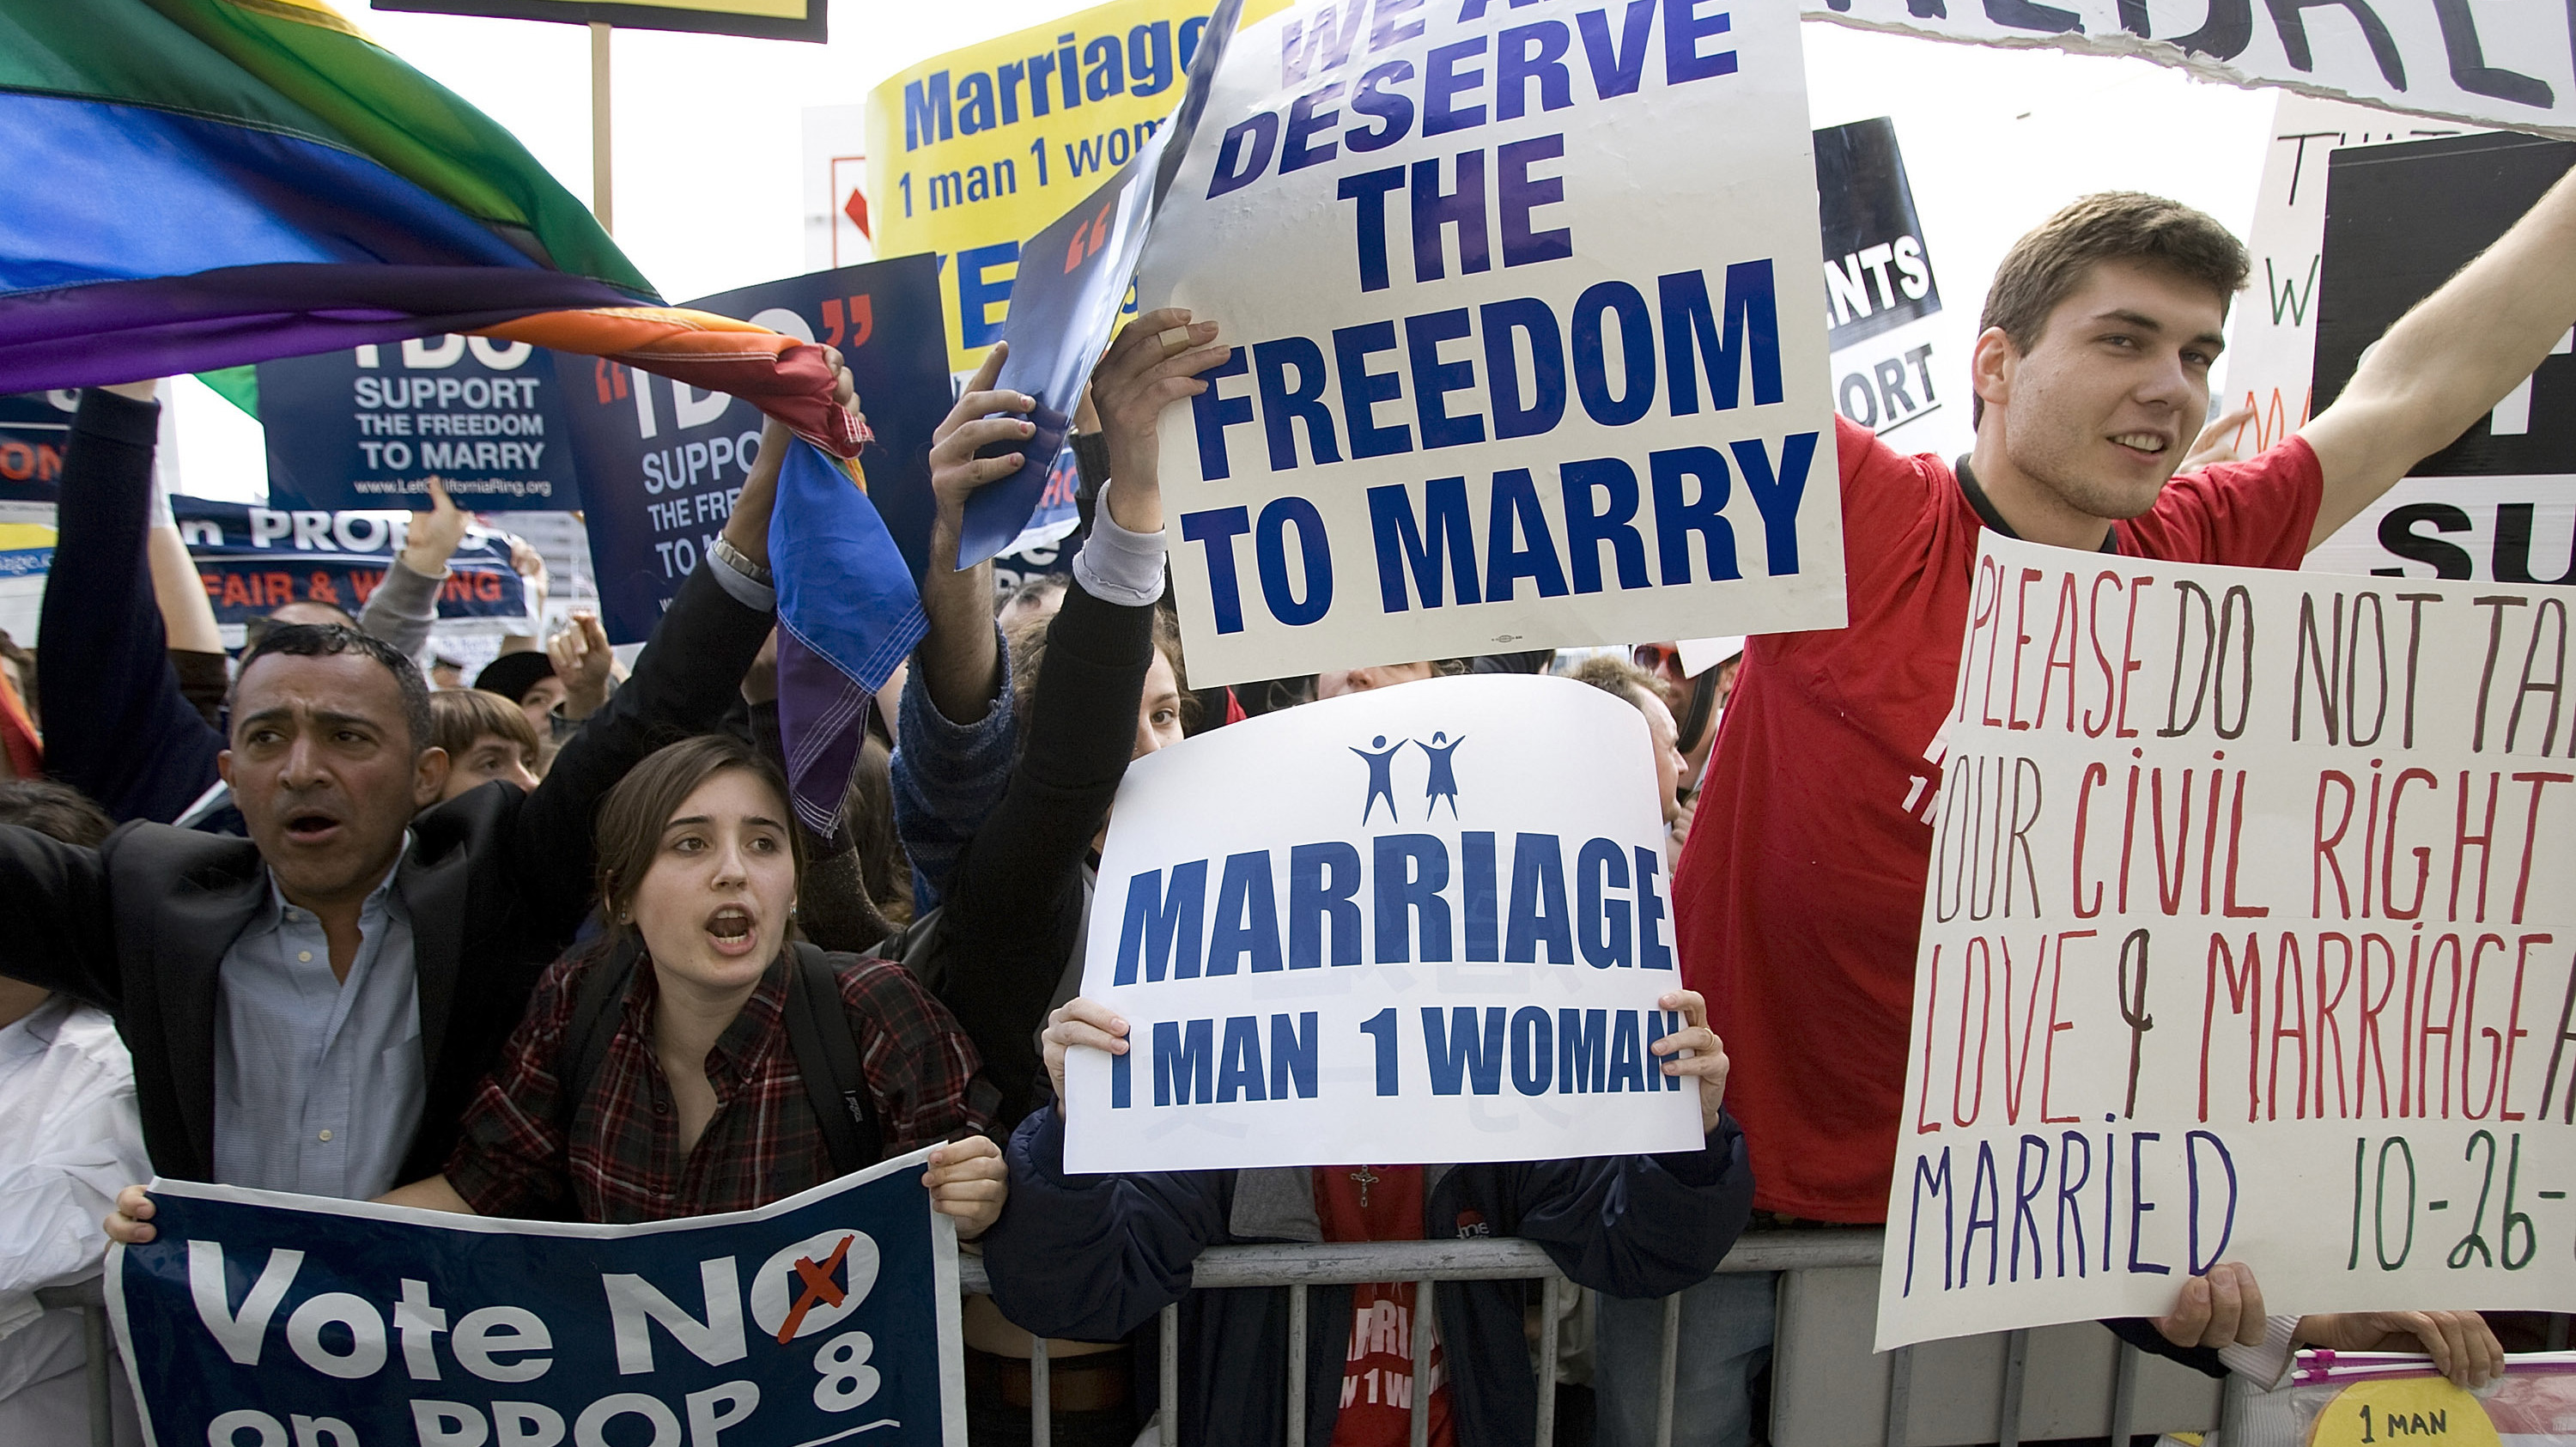 People rally in front of the California Supreme Court building in March 2009 after arguments were heard on the gay marriage ban.